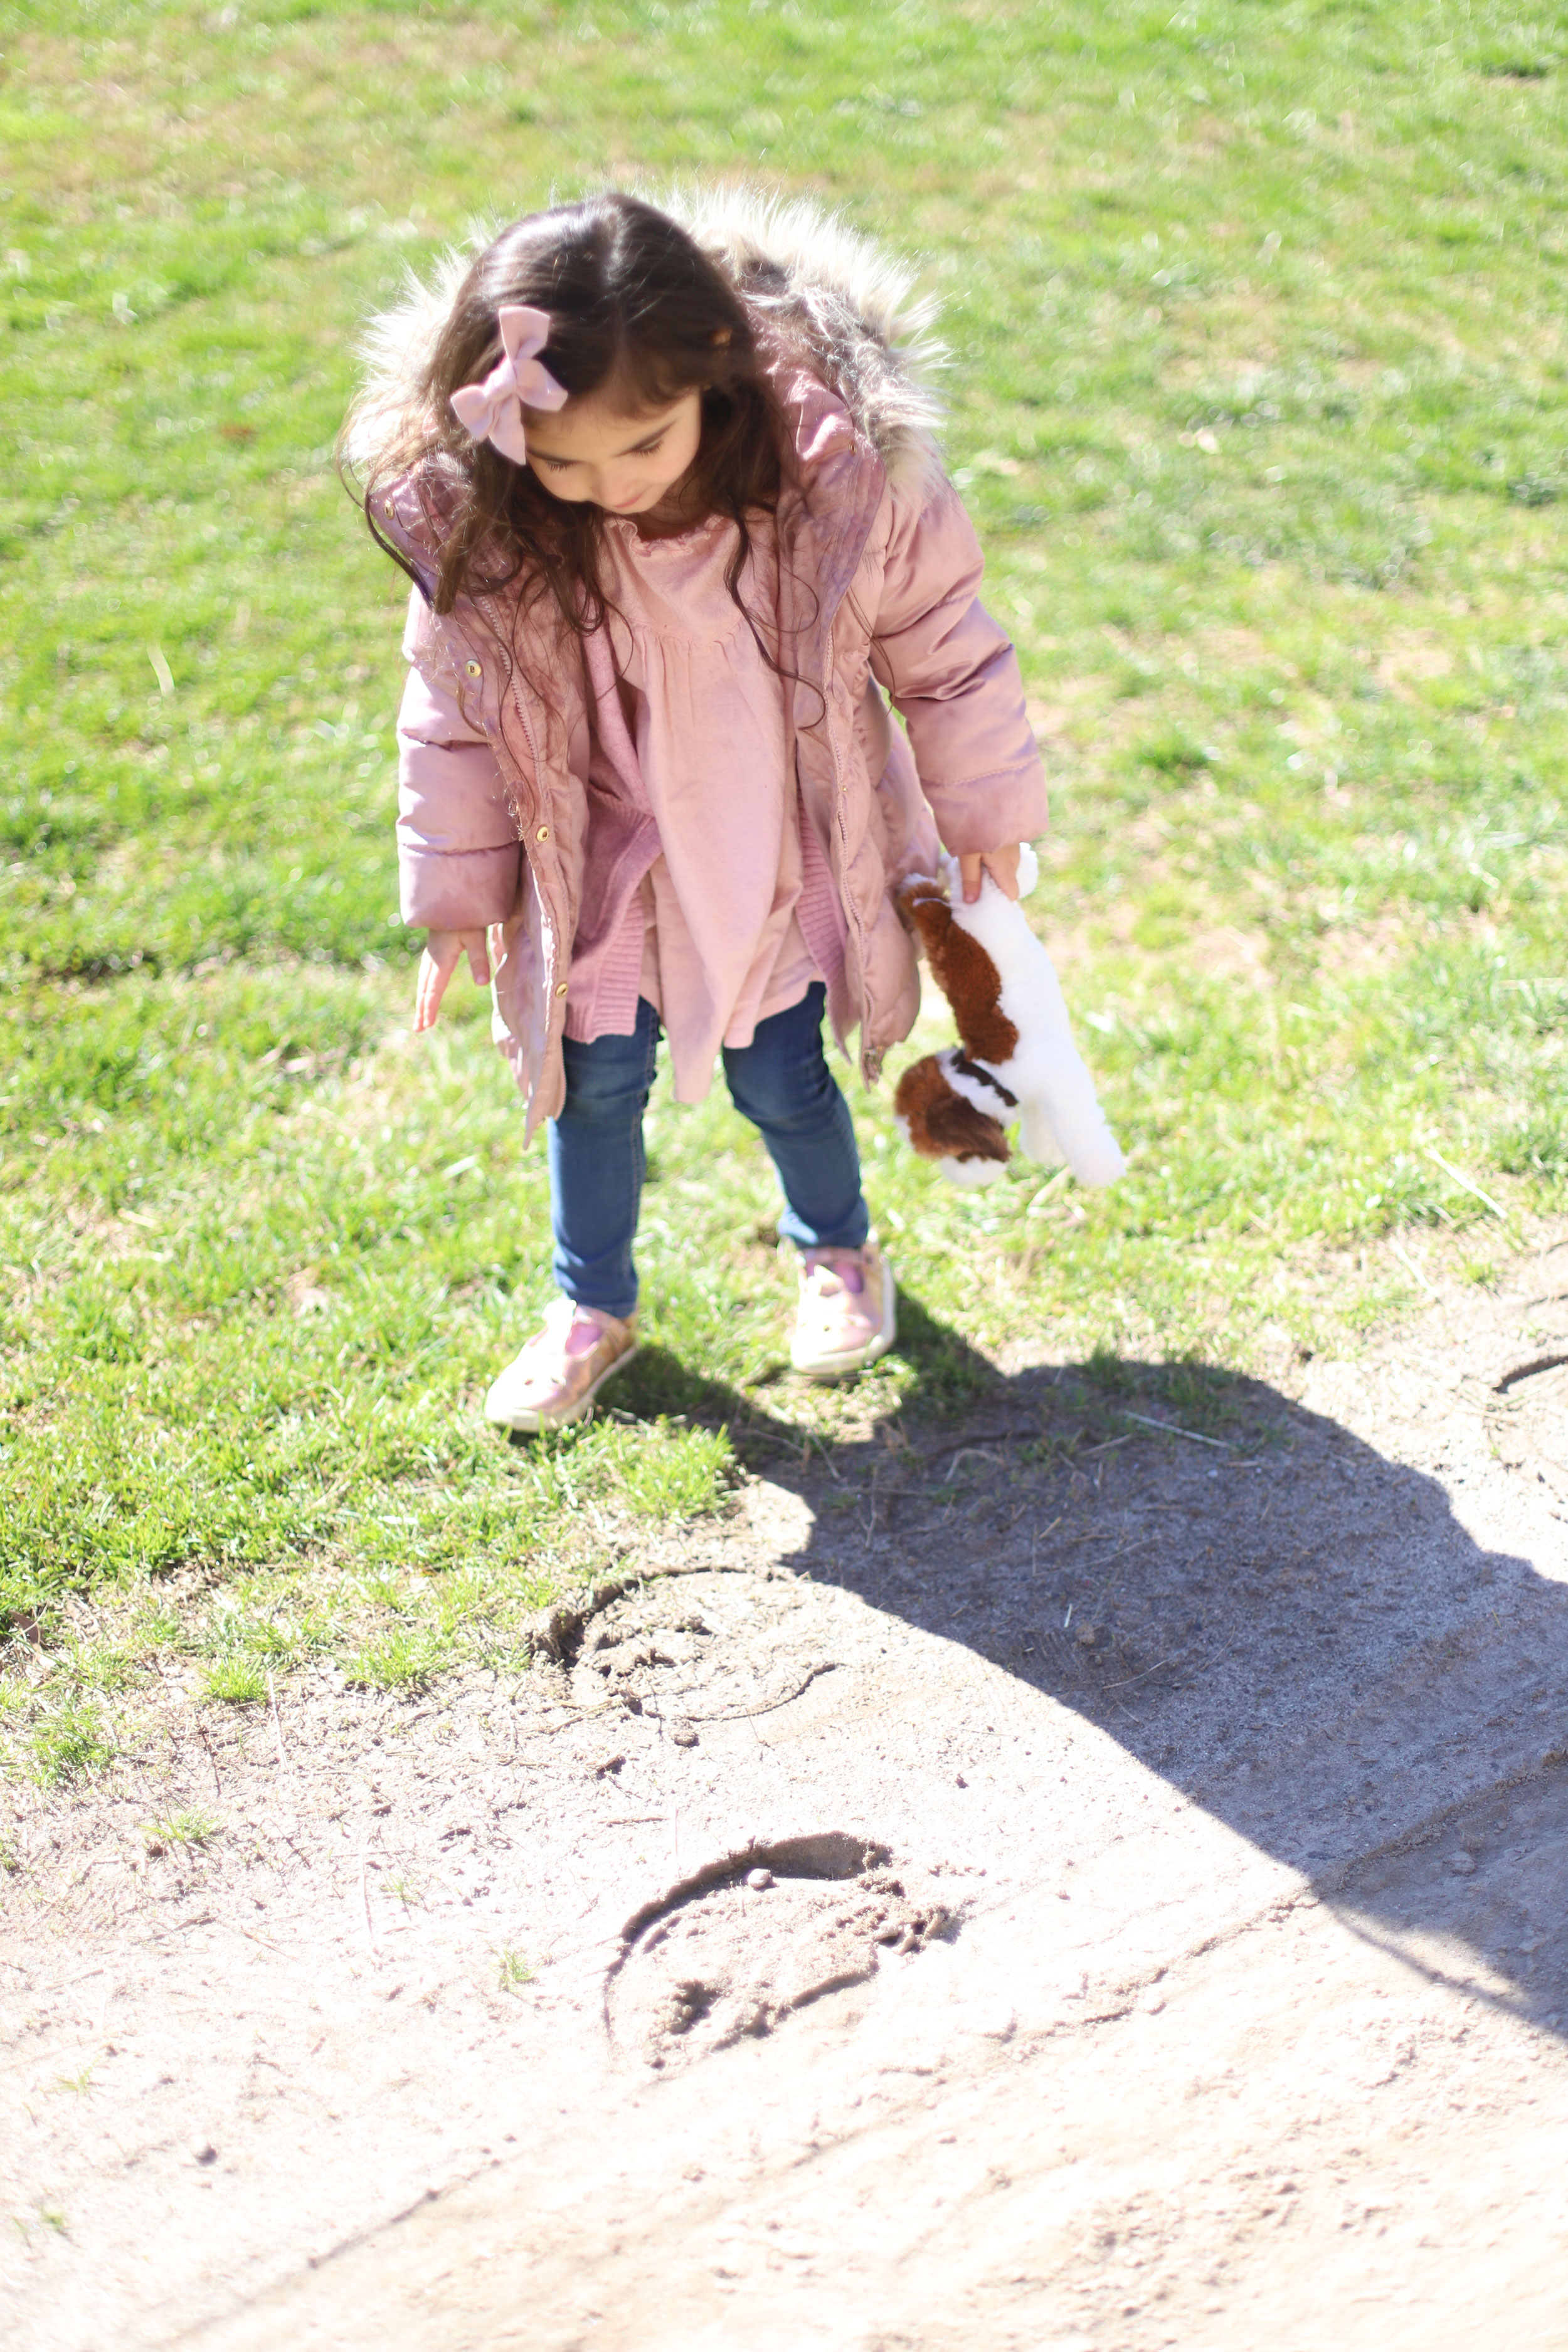 Long after the ride, Scarlett continued to point out horse shoe prints in the ground and talk about her new friends, the horses.